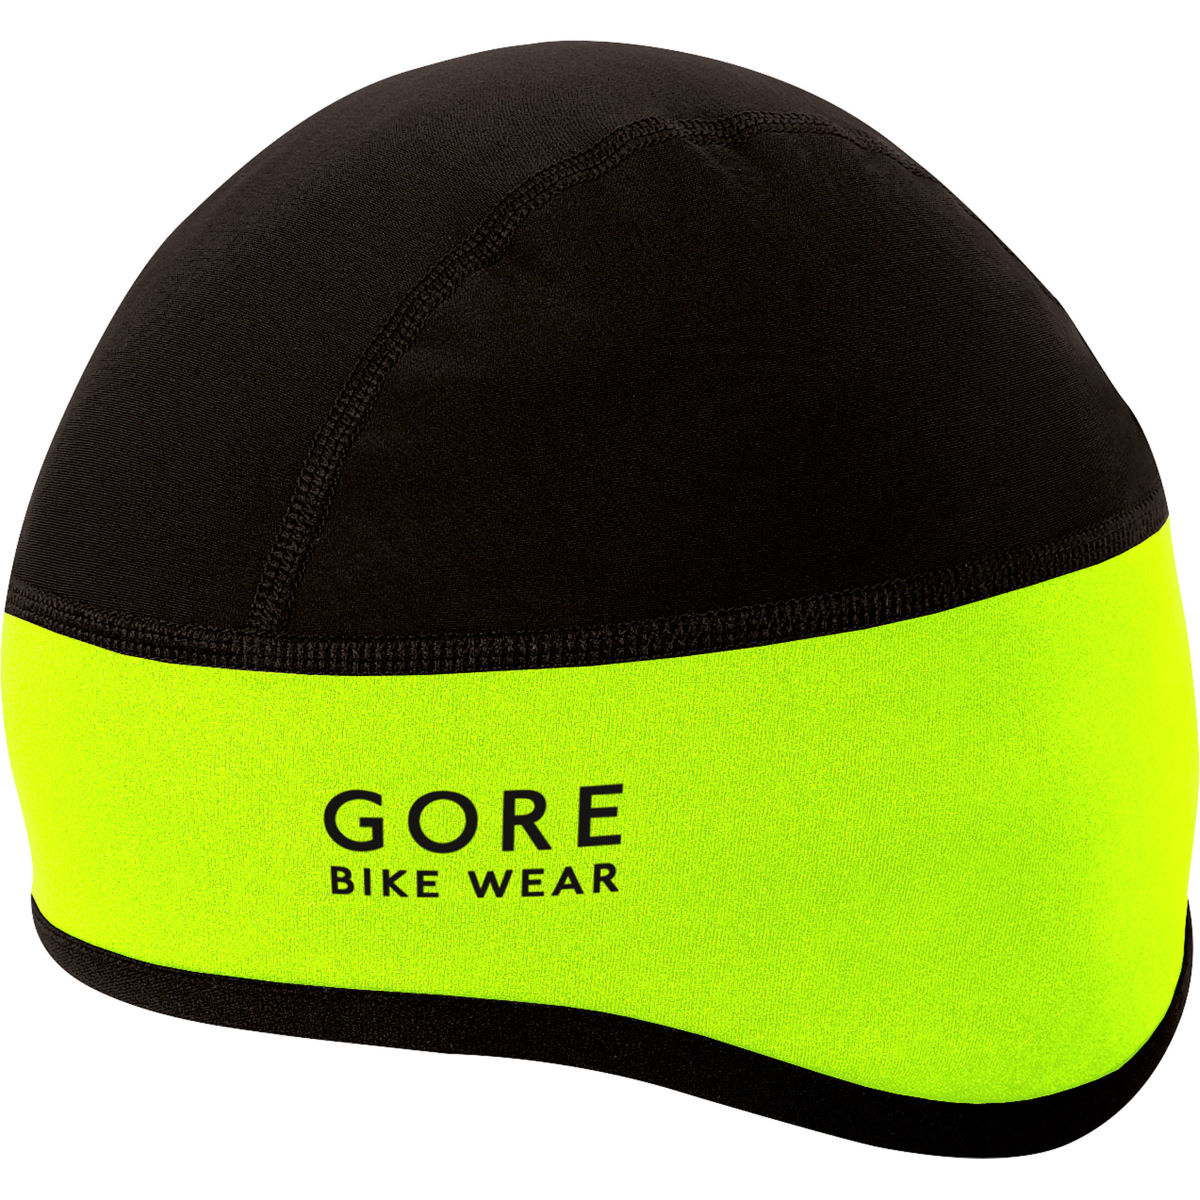 Bonnet Gore Bike Wear Universal Windstopper Softshell - 54-58